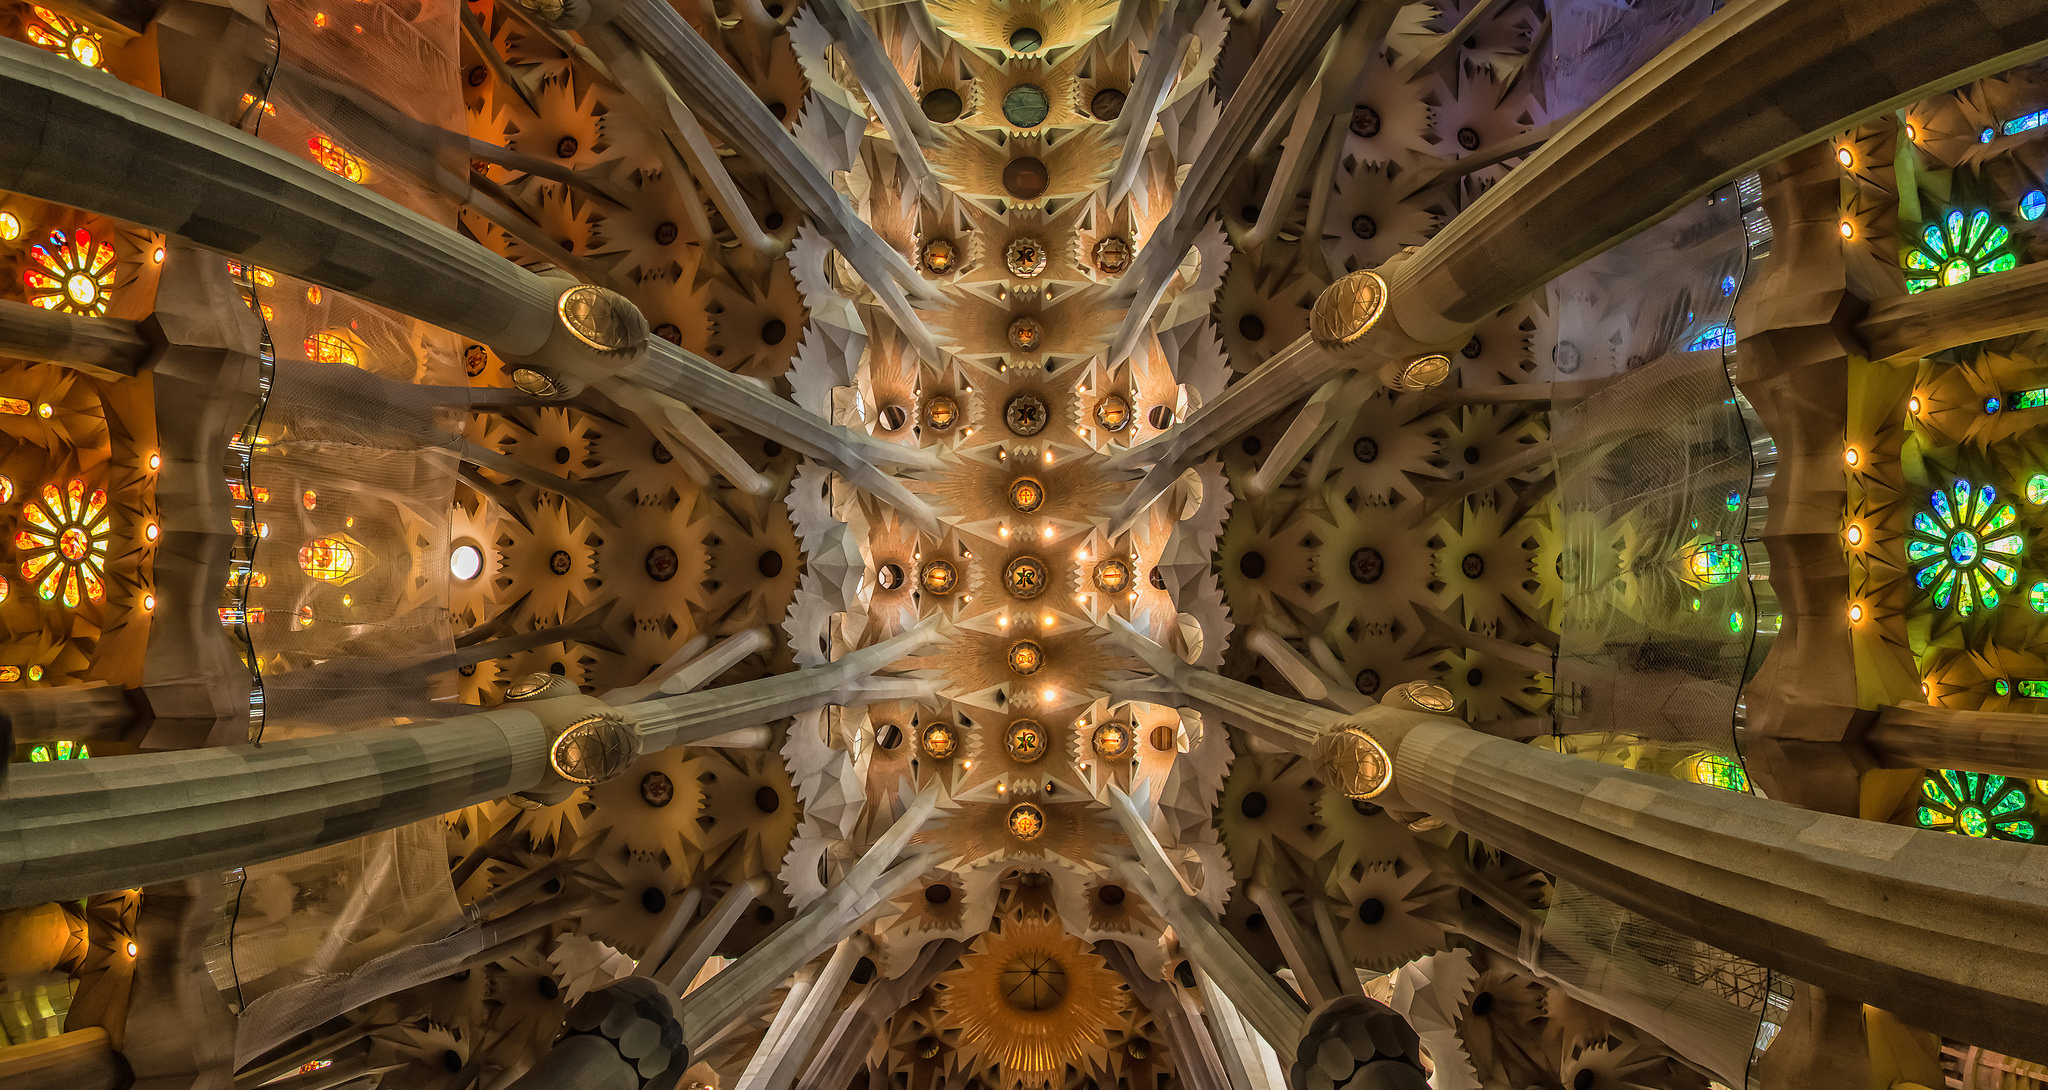 15 Amazing Facts You Need To Know About Gaud 237 S La Sagrada Familia